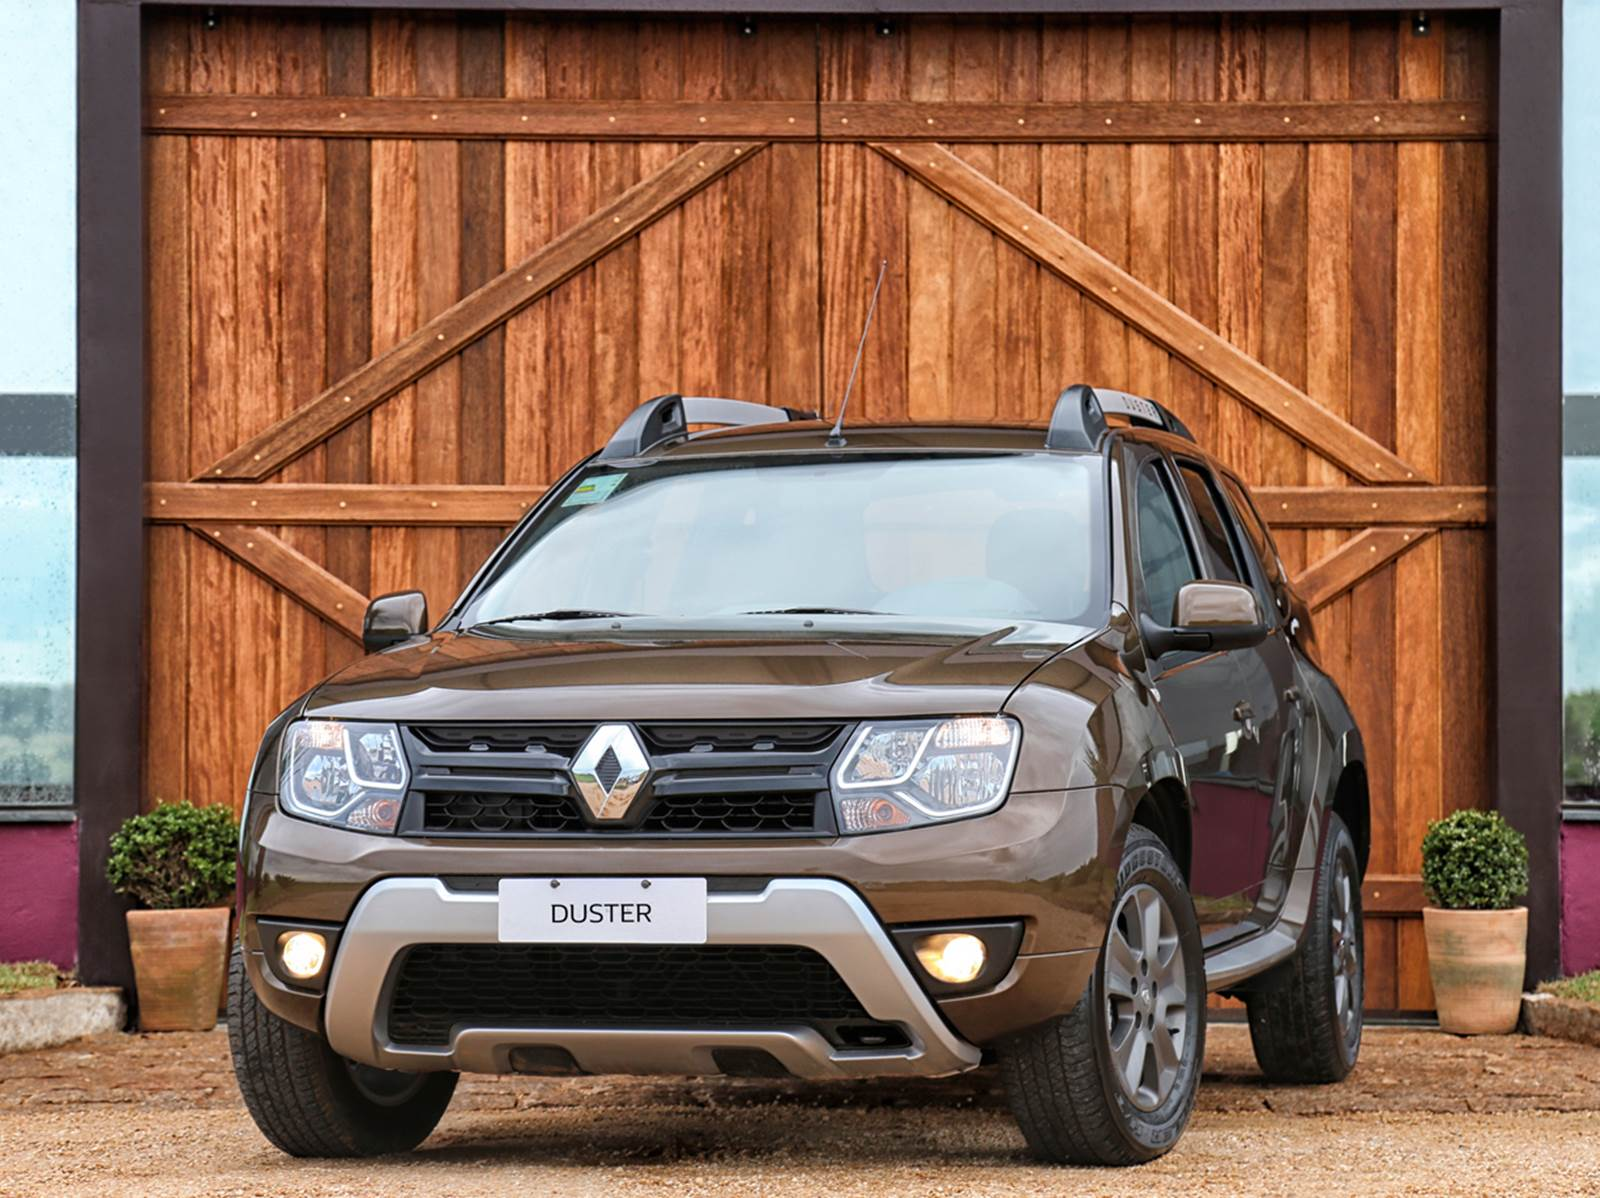 2016 renault duster launched with new look better economy in brazil autoevolution. Black Bedroom Furniture Sets. Home Design Ideas